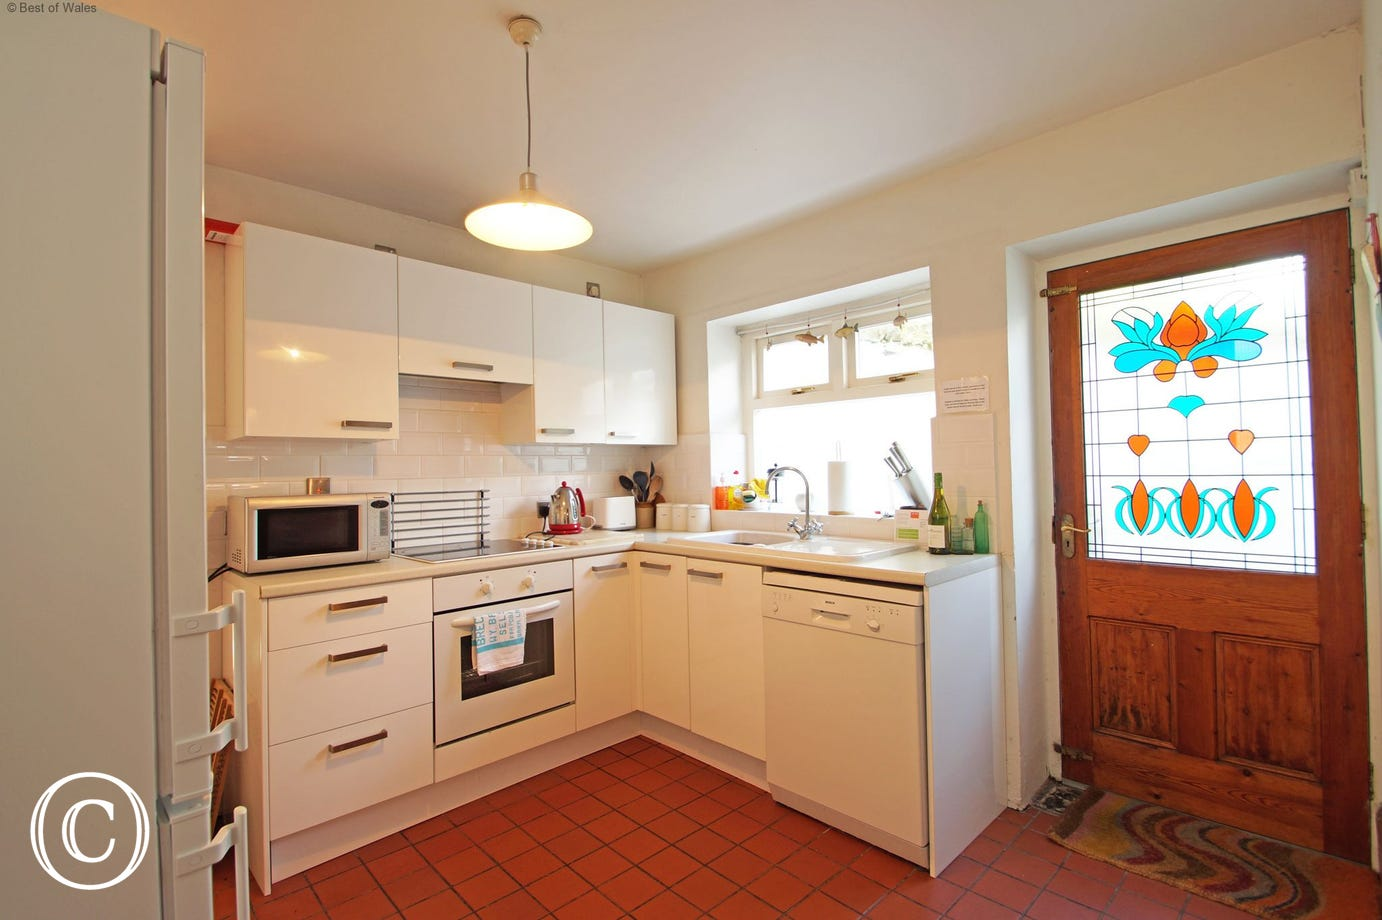 Self catering in West Wales at its best - fully equipped kitchen